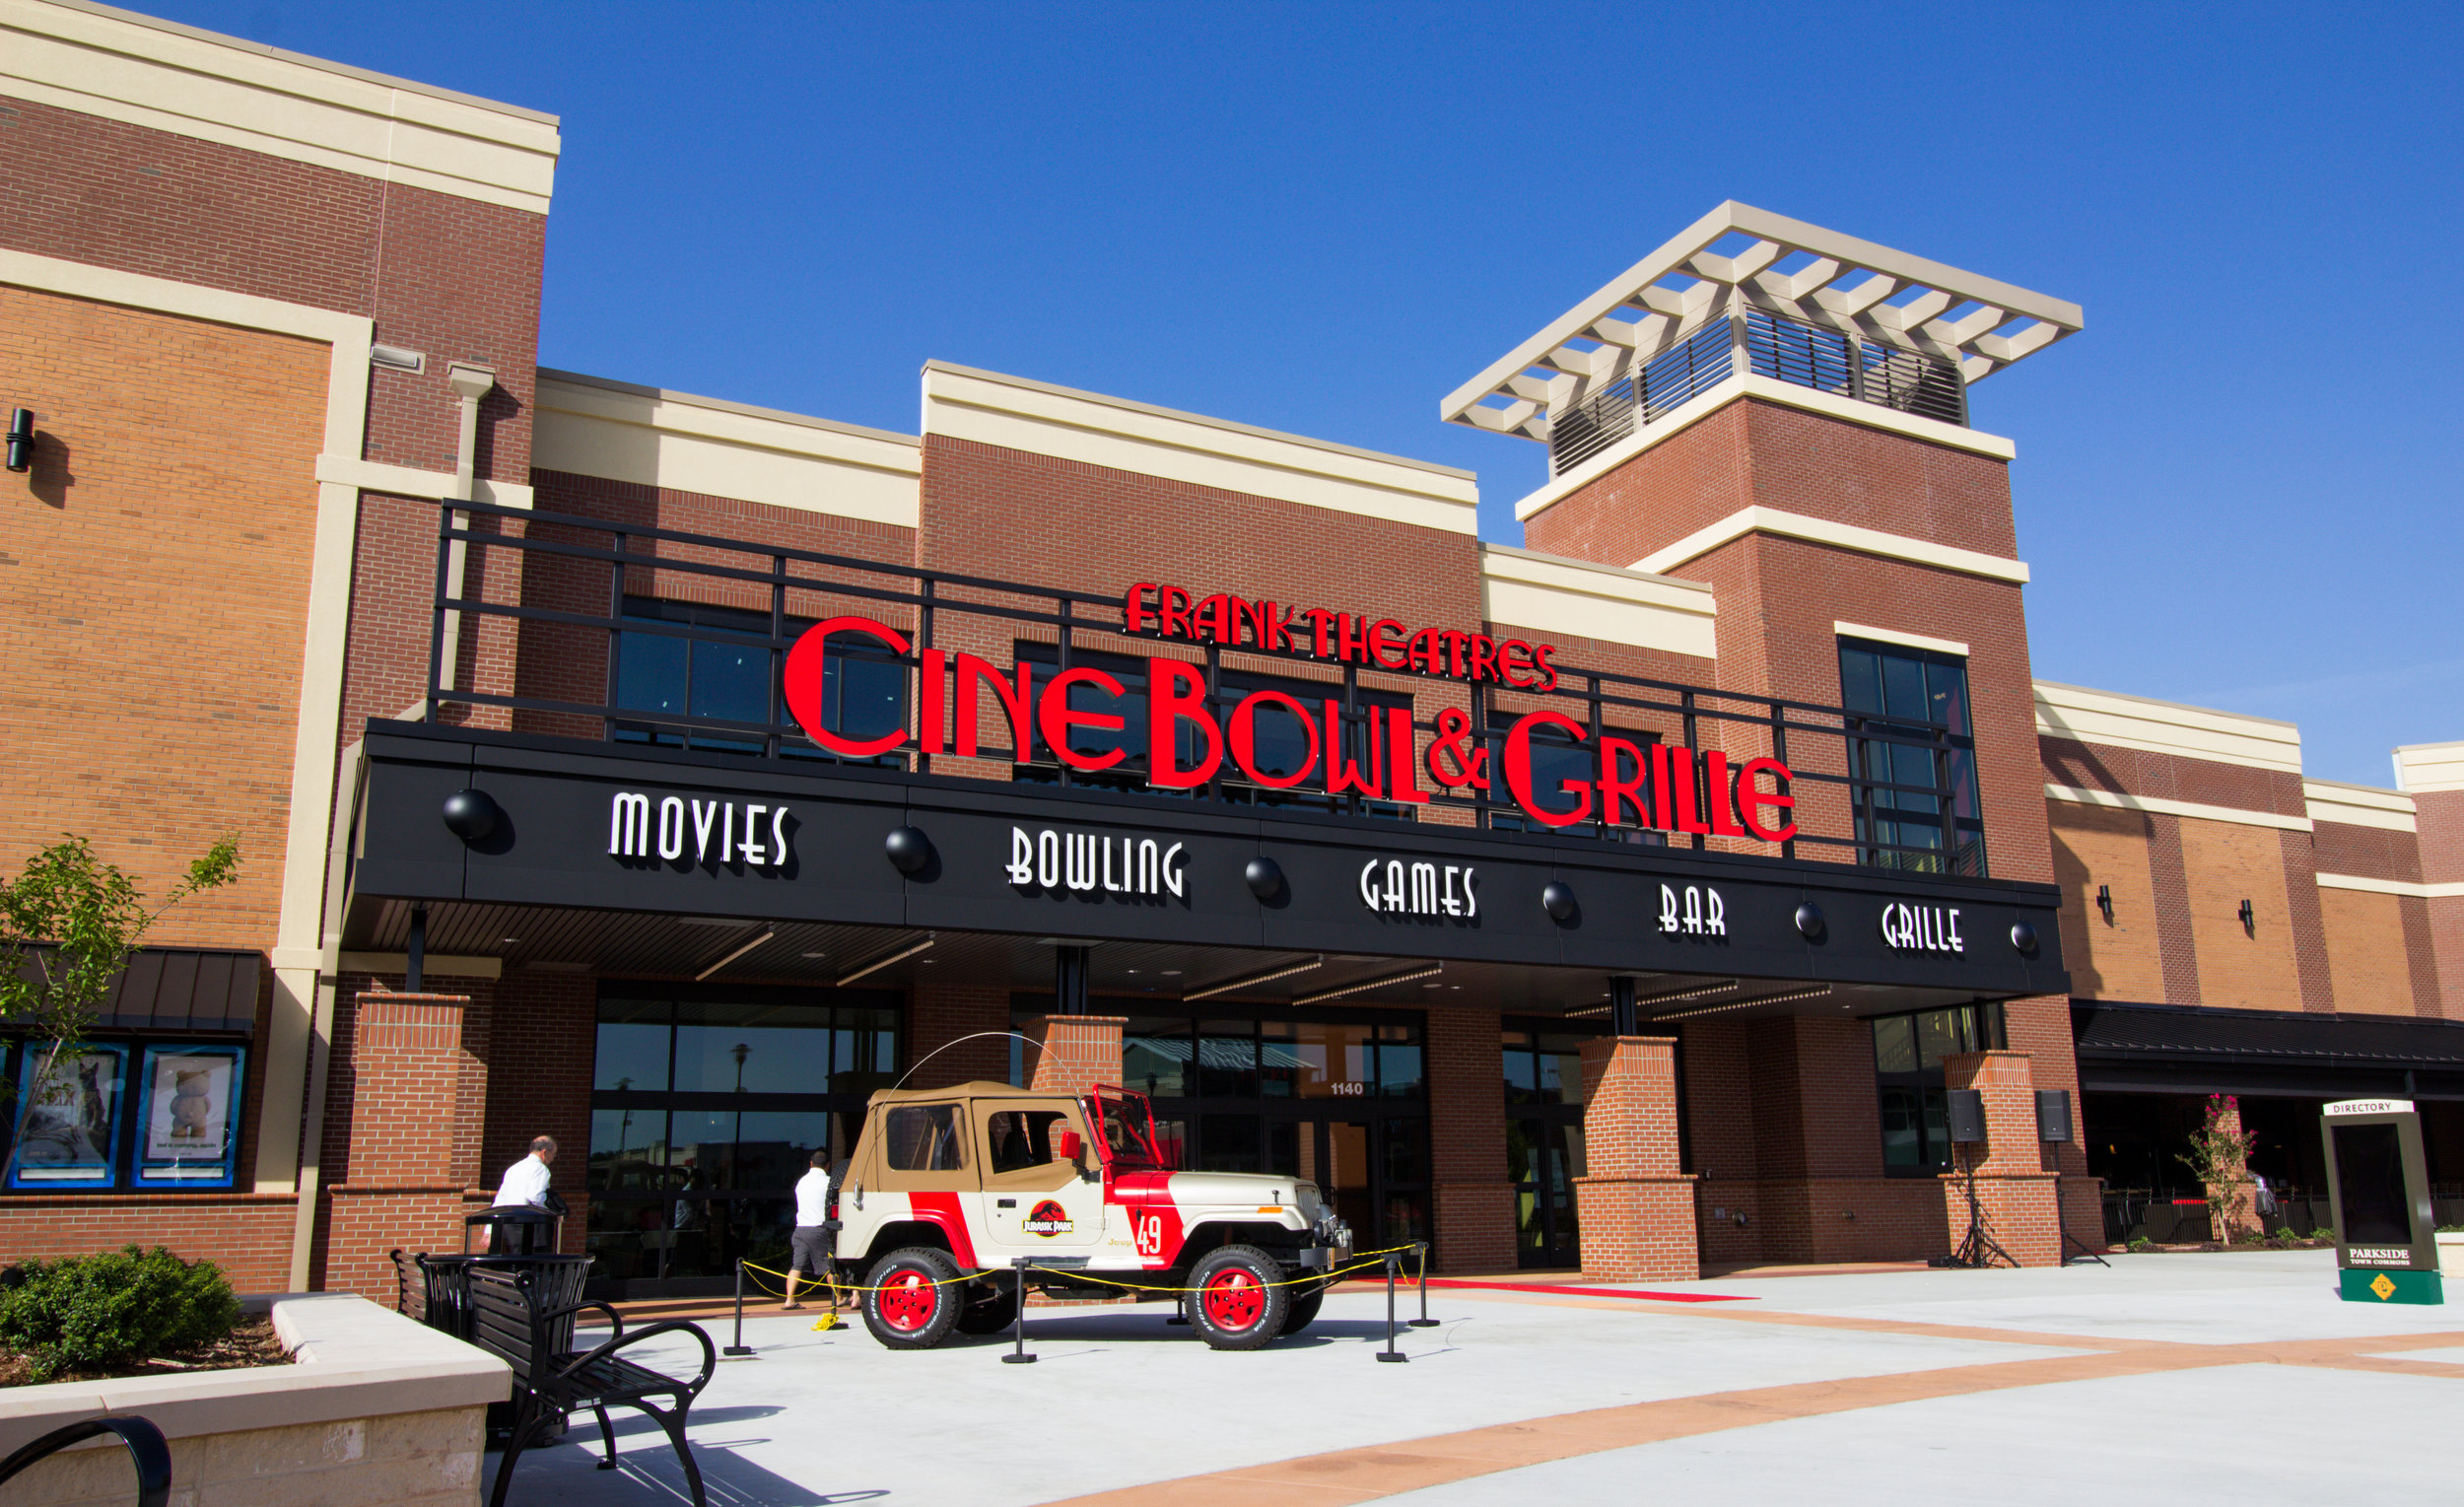 ADW-Entertainment-CineBowl-Grille-Cary-NC-2.jpg